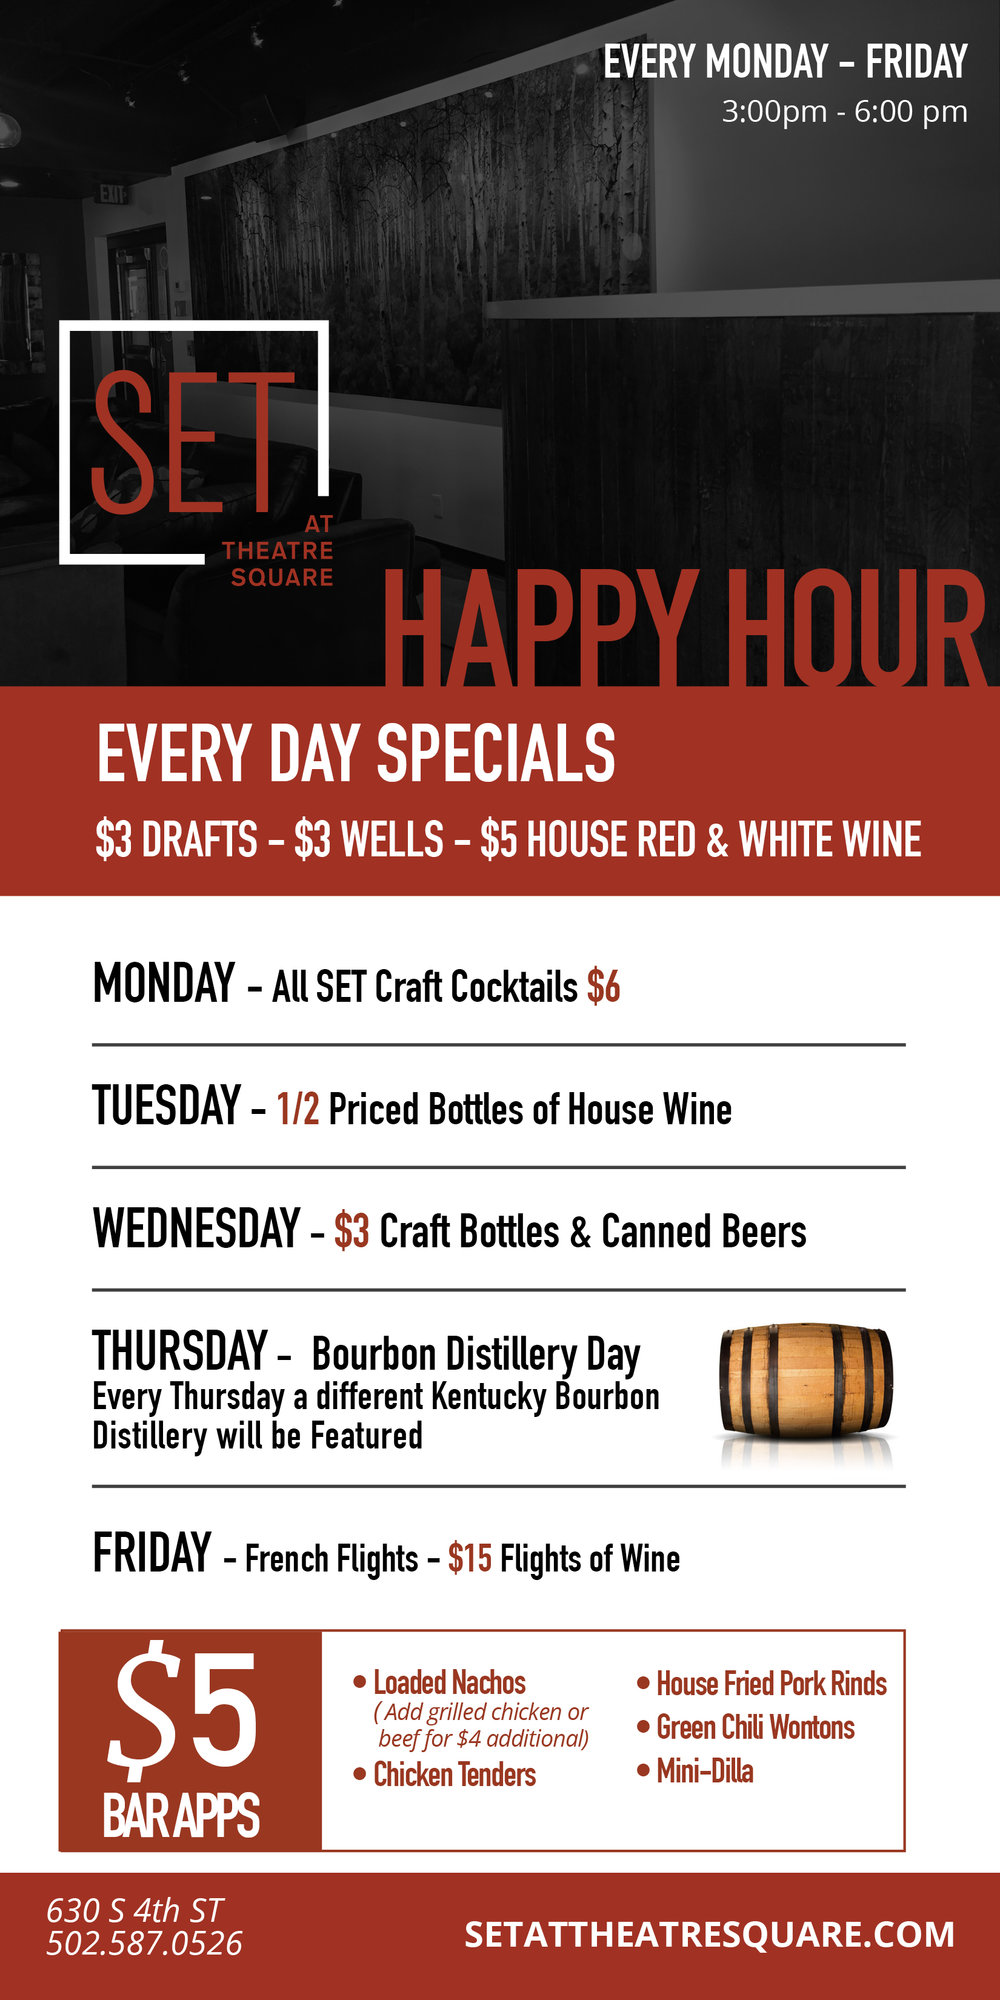 set-happy-hour-louisville-palace-lunch